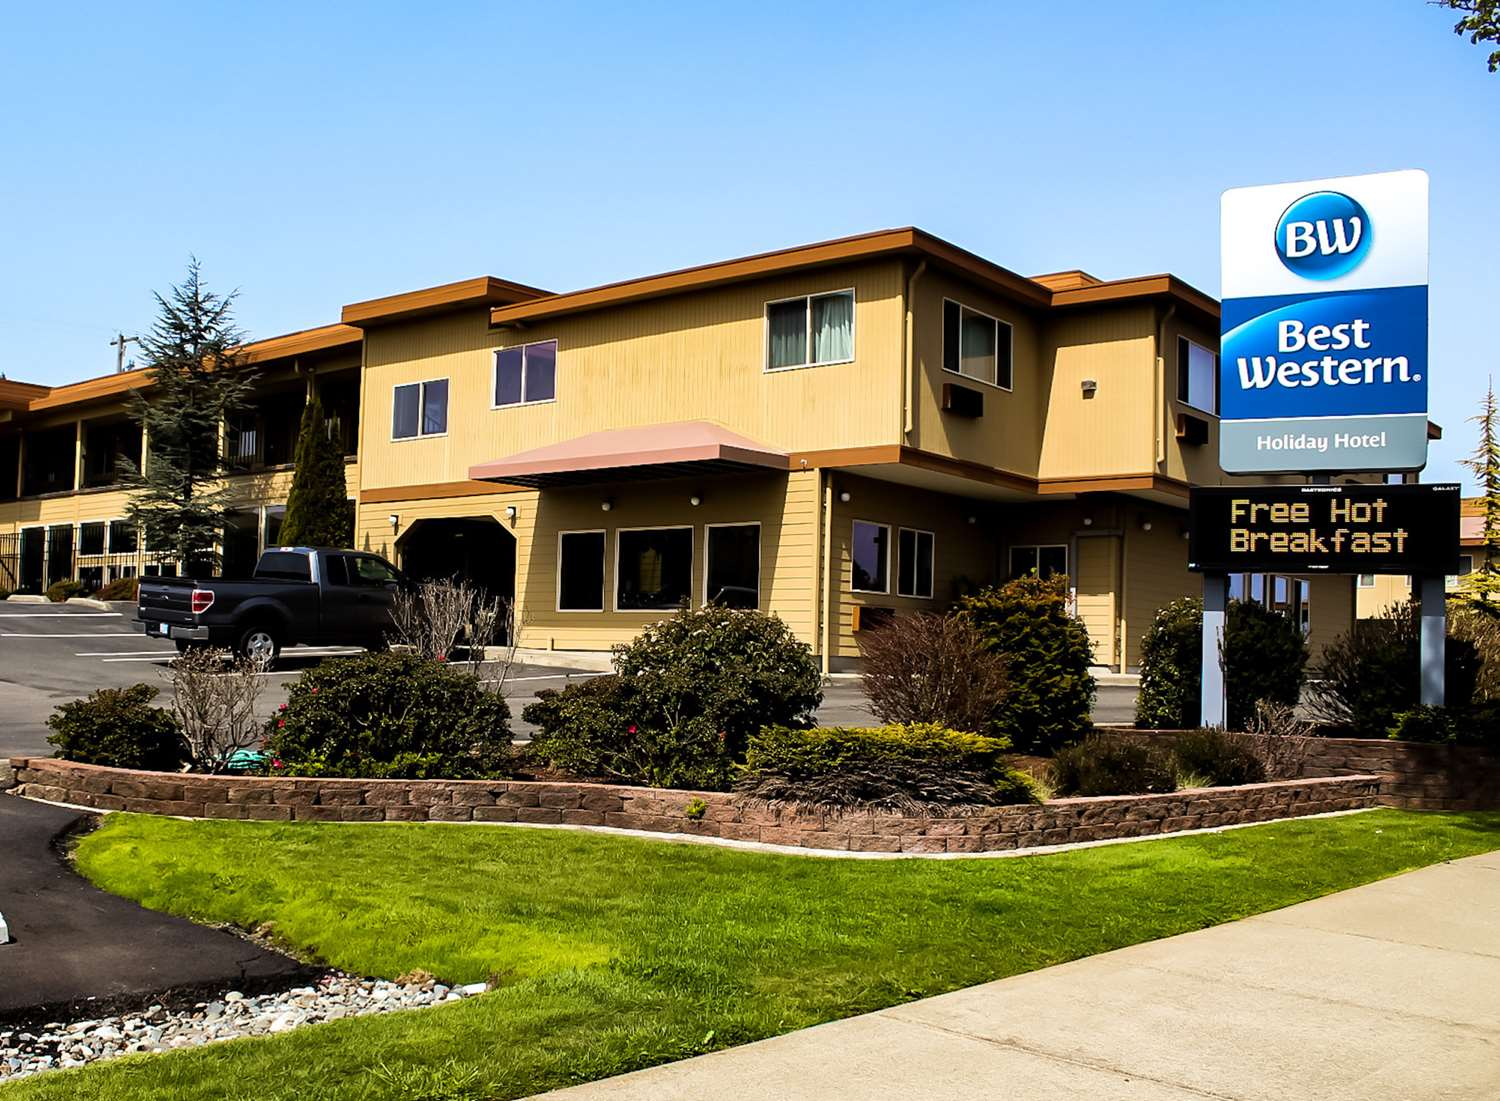 Exterior view - Best Western Holiday Hotel Coos Bay